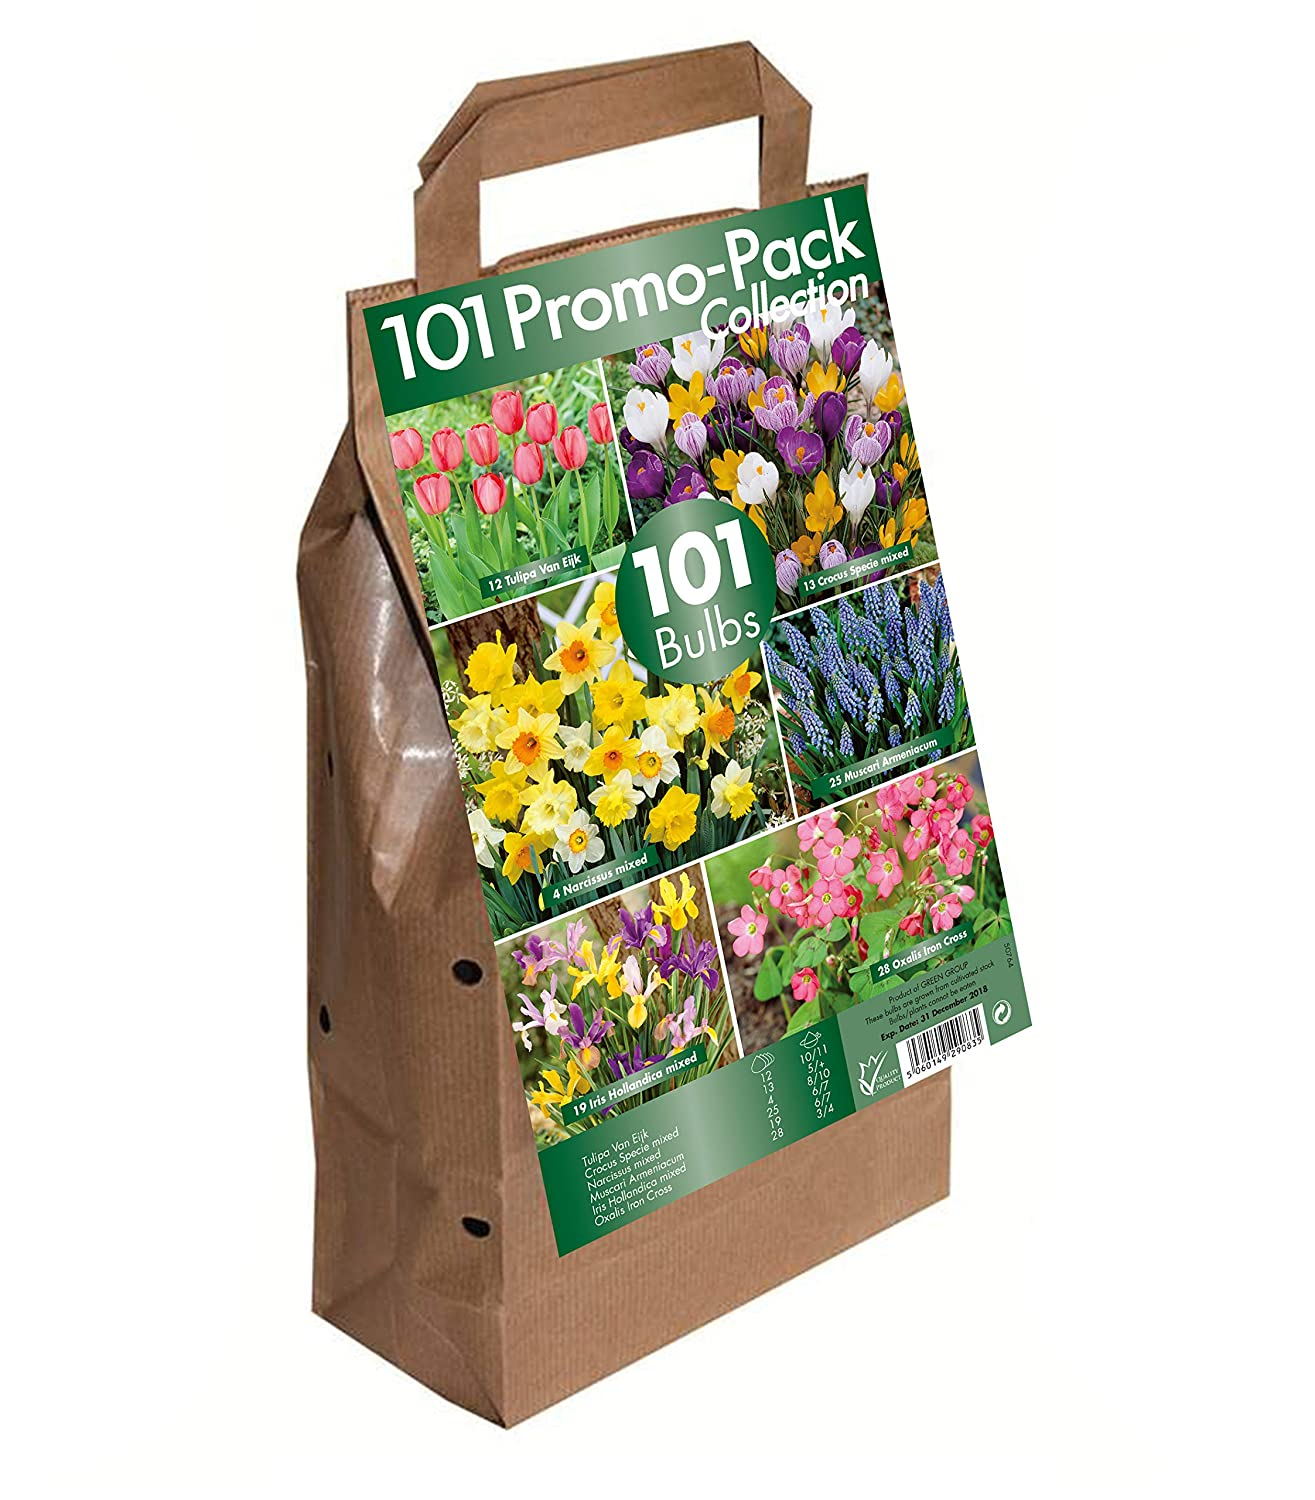 101 Flower Bulb Collection Big Buy Value Pack 6 Spring Flowering